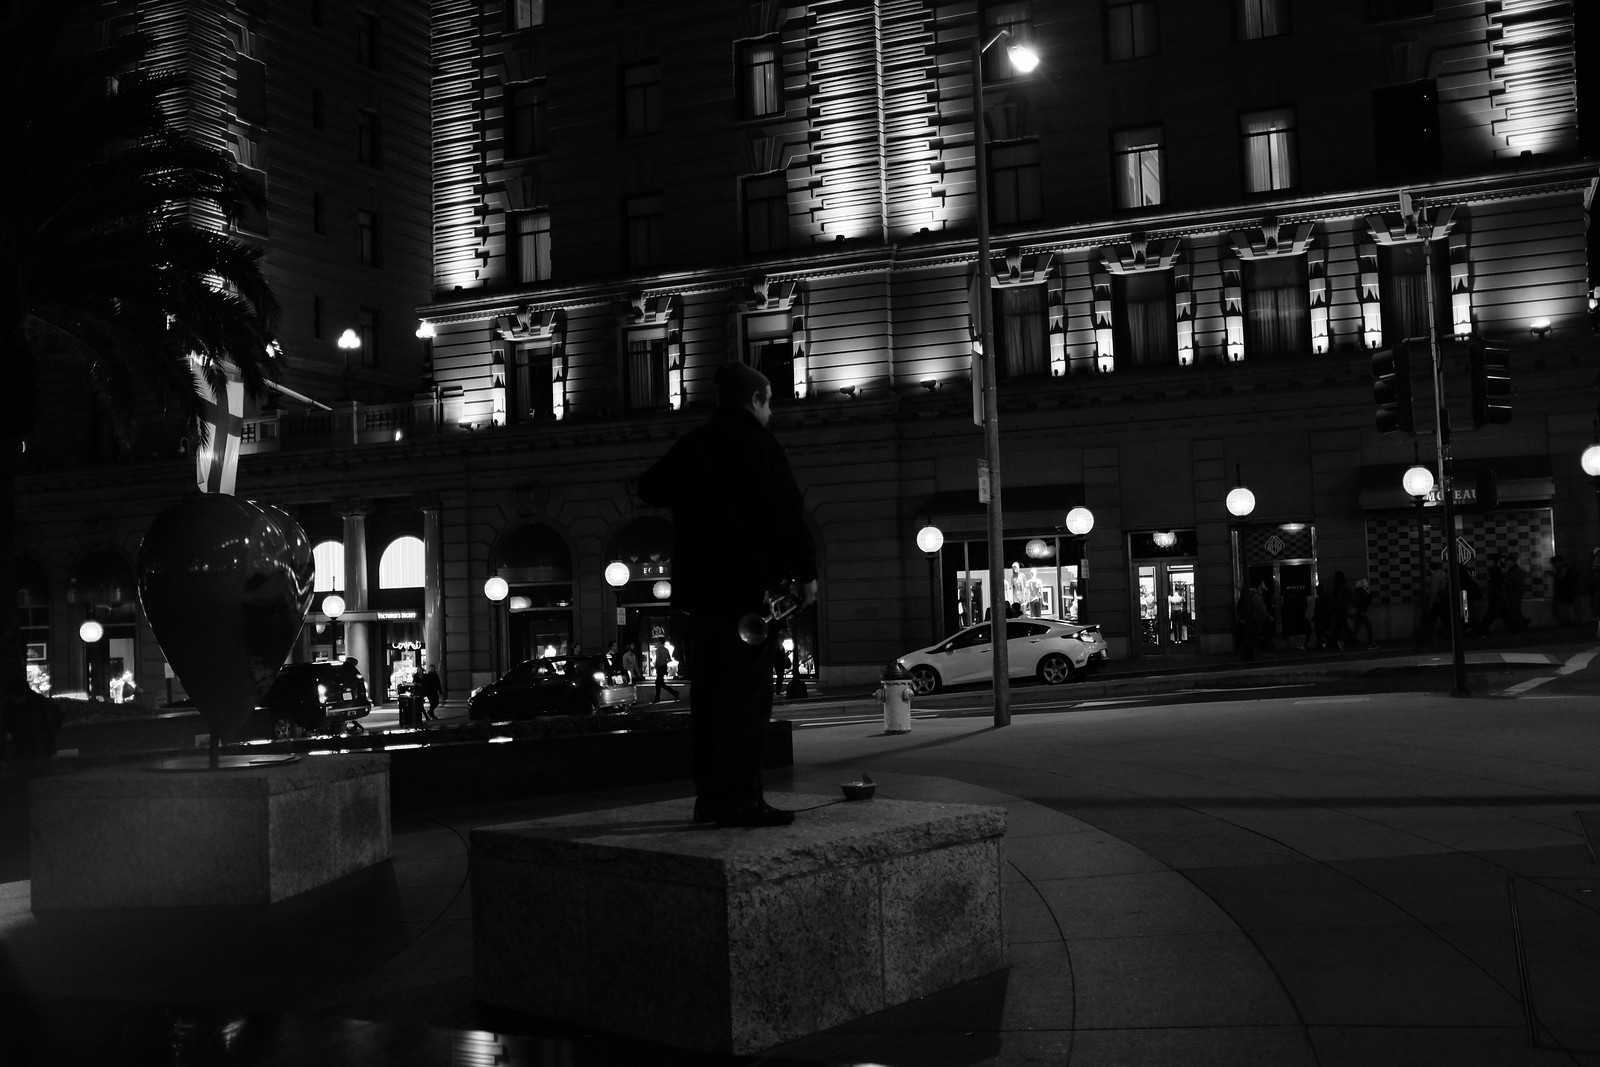 The San Francisco night photo taken by FUJIFILM X100S.